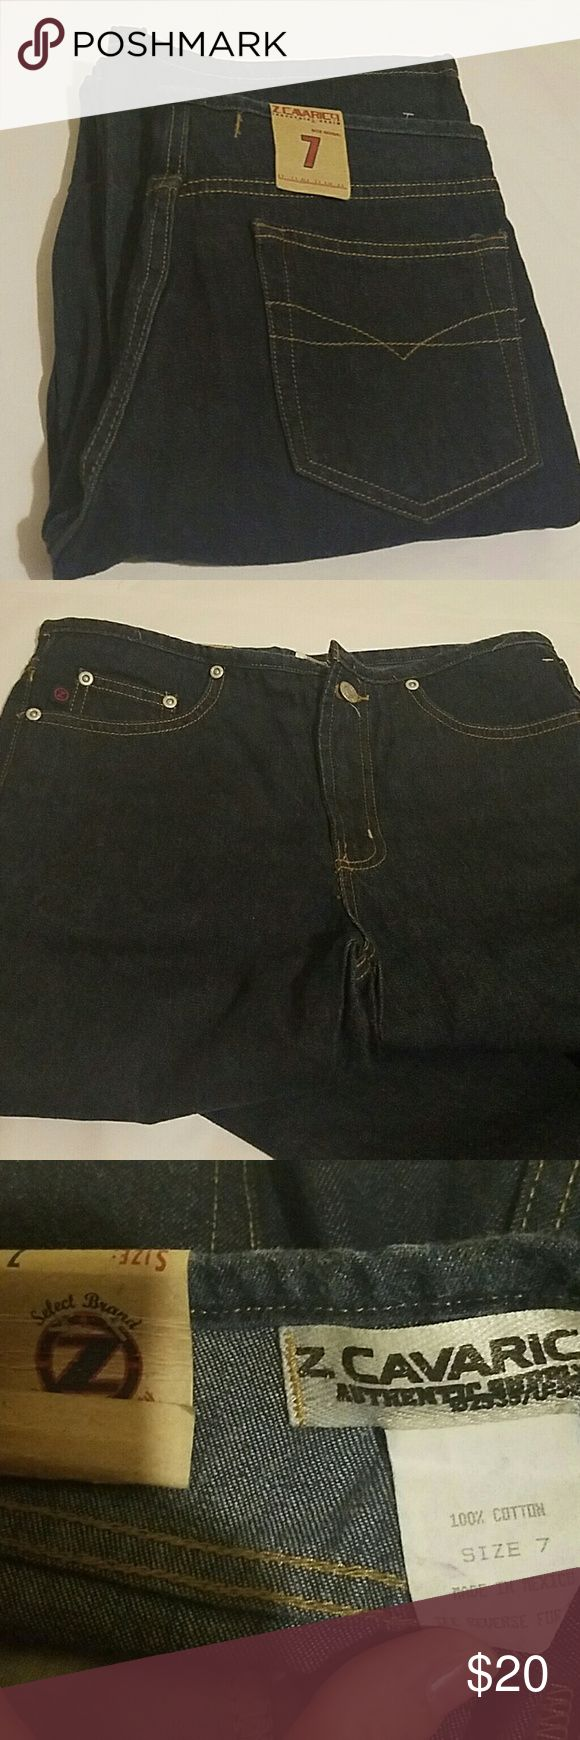 Retro Z Cavarici Jeans Please note the style on the waistline.   These are gorgeous.   Size 7.  Waist is approximately 30.  Length is approximately 32.  These are a dark wash.   These fall between a boot cut and a flare leg.  Hot. Z Cavarici  Jeans Flare & Wide Leg